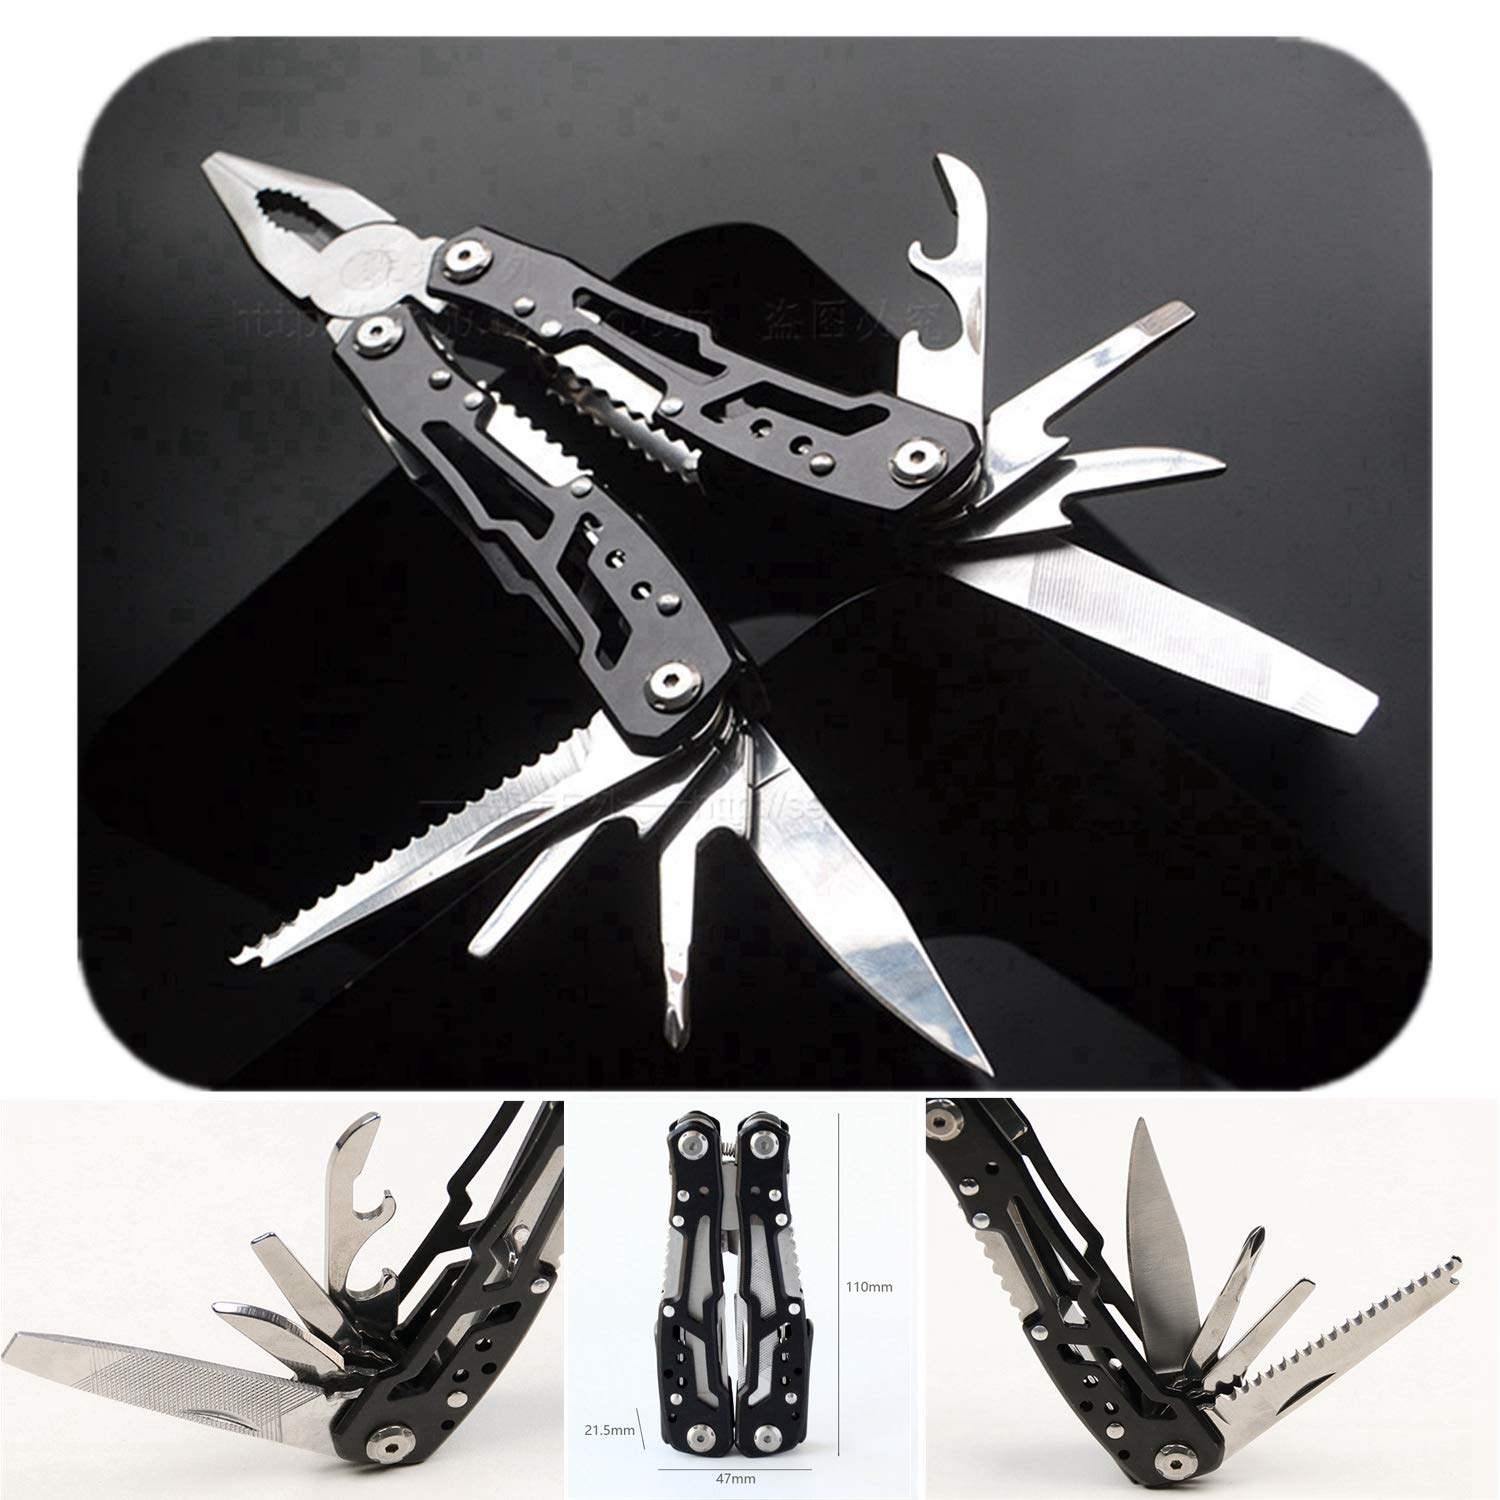 Multitool Plier with Sheath Sidekick Pocket Size Tactical Suspension Plier with Knife for Home, Survival, Camping, Hiking, Fishing